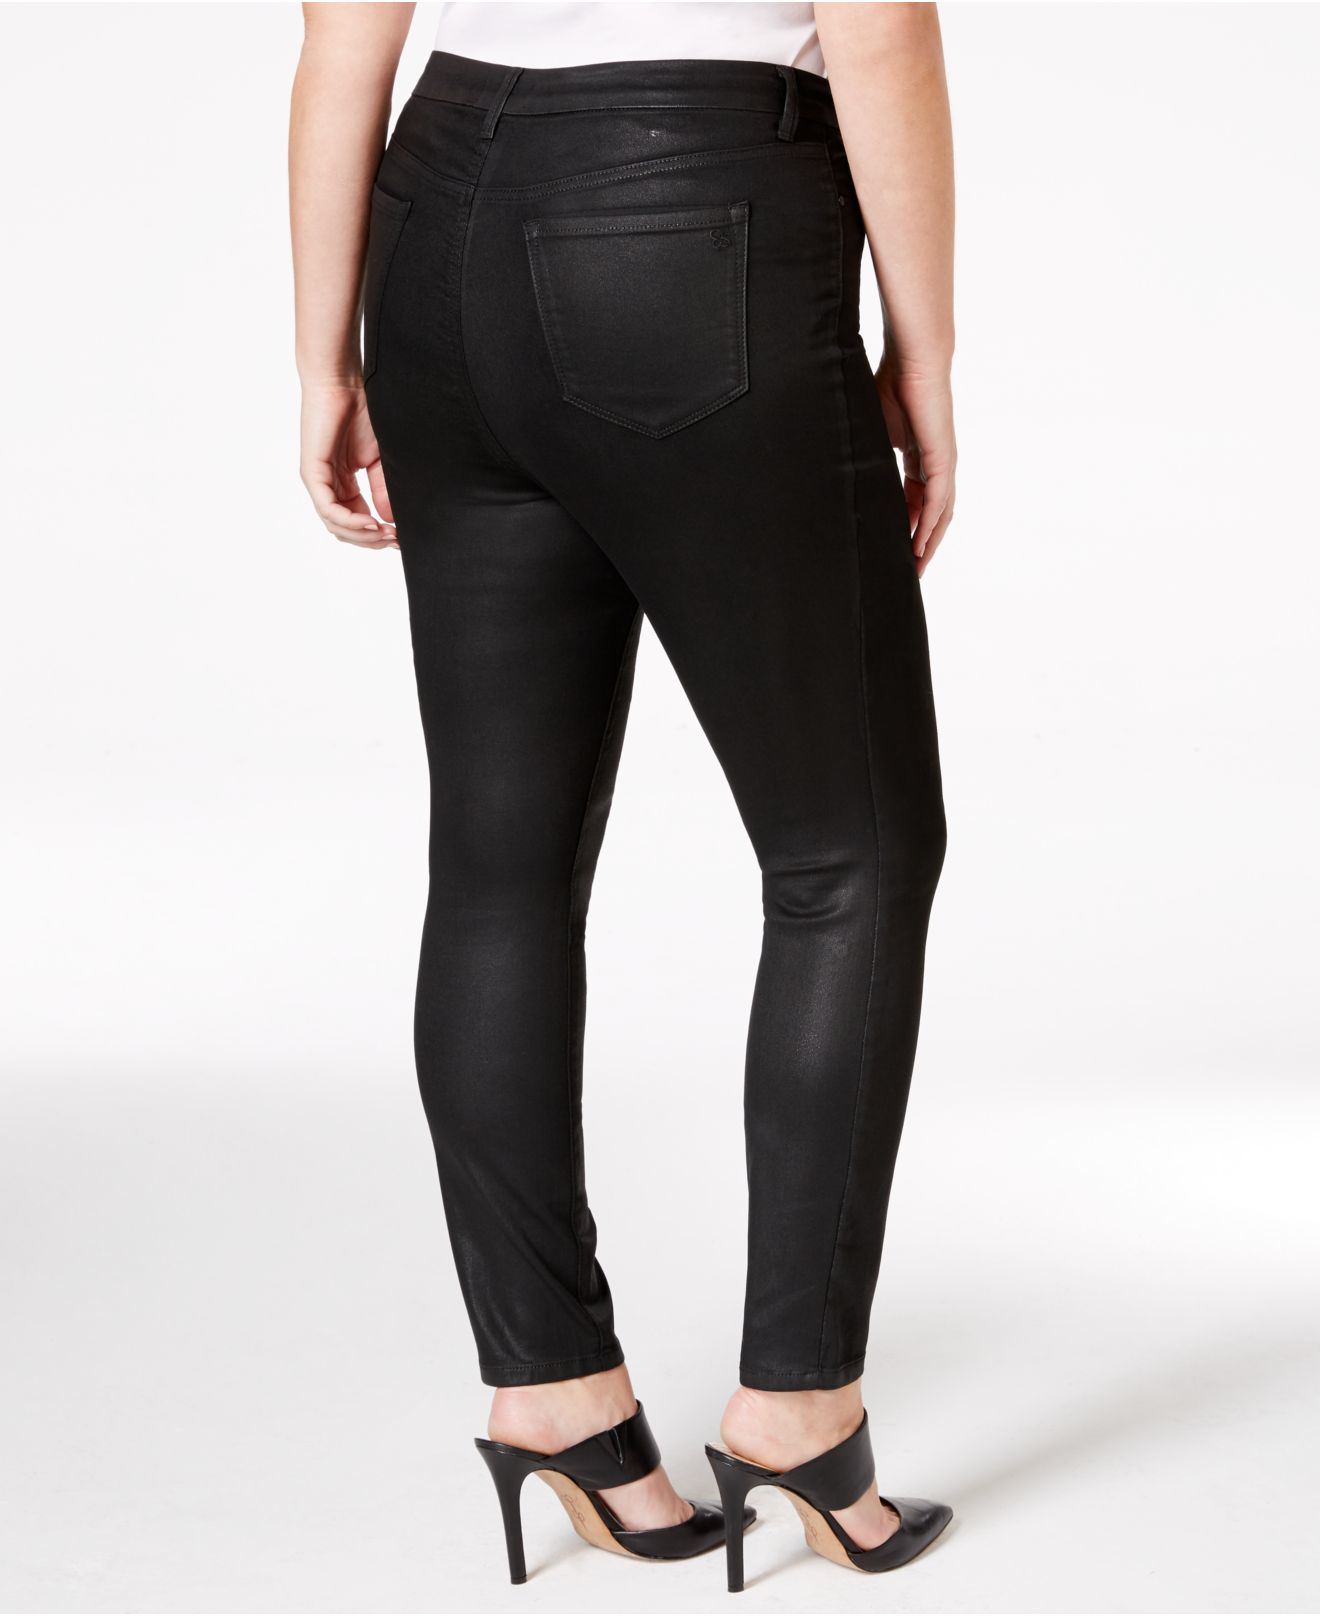 Maternity 5 Pocket Skinny Pants - Available in Plus Sizes Product - Maternity Full Panel Super Soft Destructed Skinny Boyfriend Crop Jeans -- Available in Plus Size Product Image.